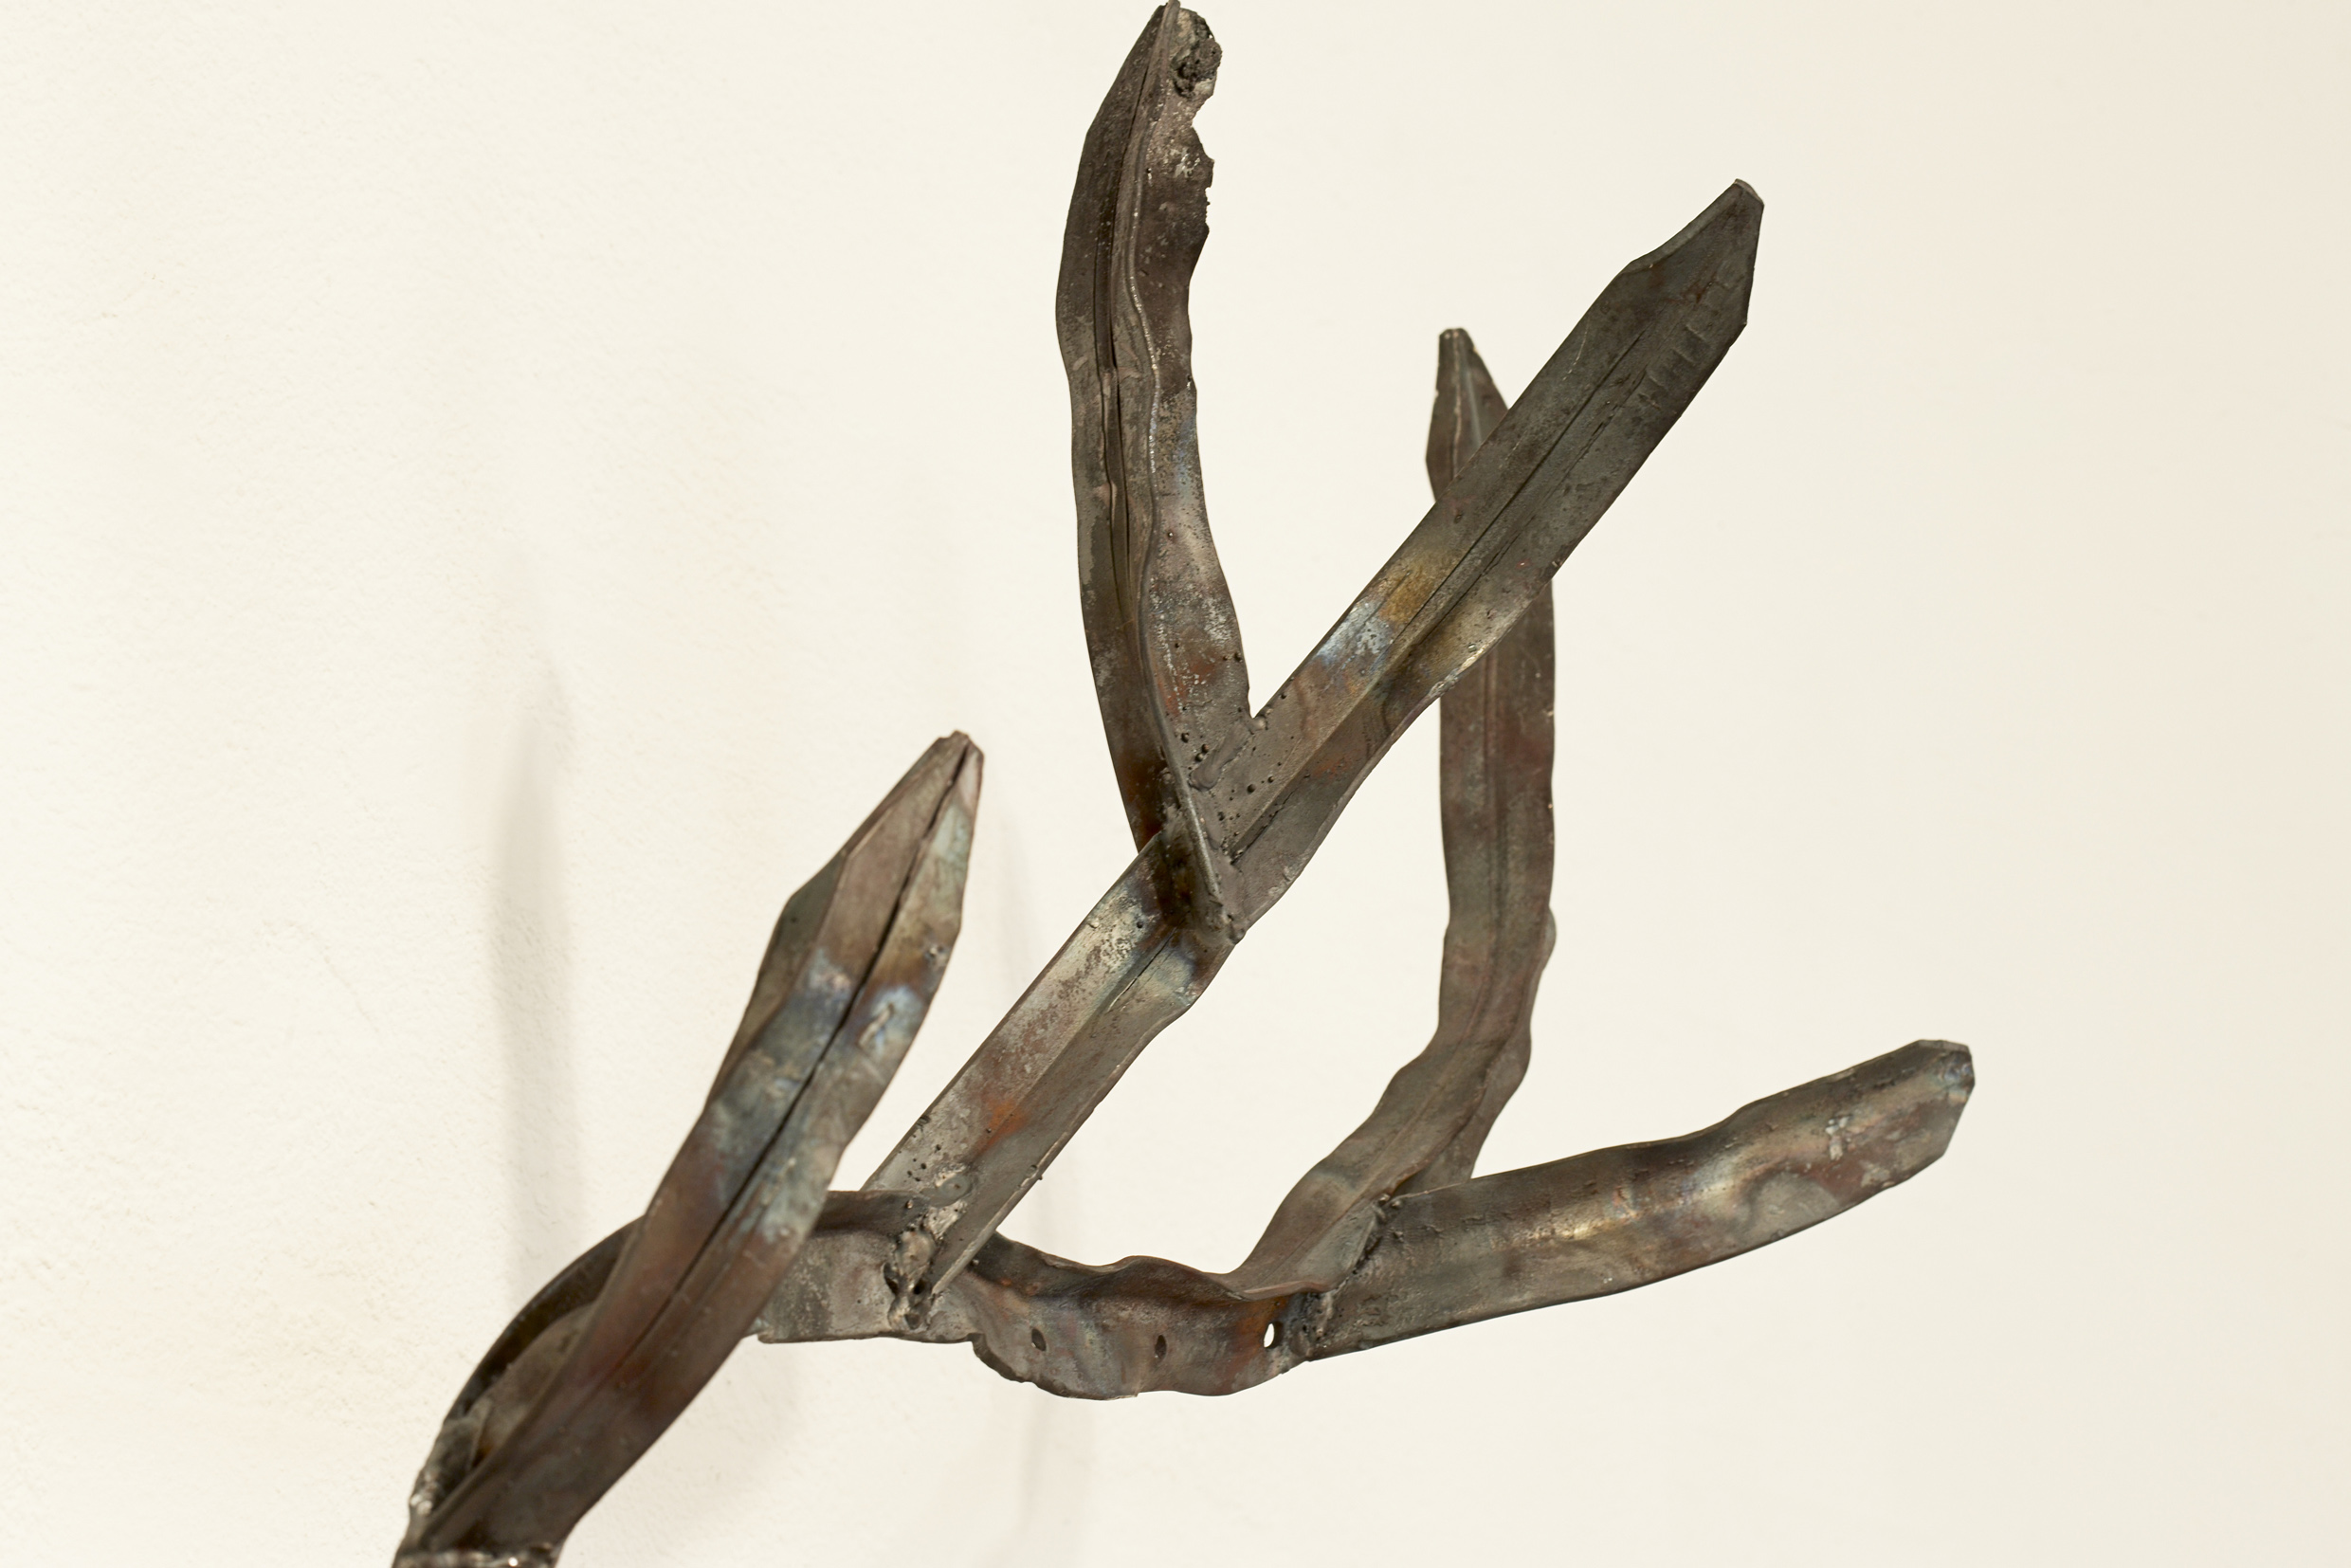 Territory Marker, 2009 Steel, Star Pickets 88 x 165 x 43 cm